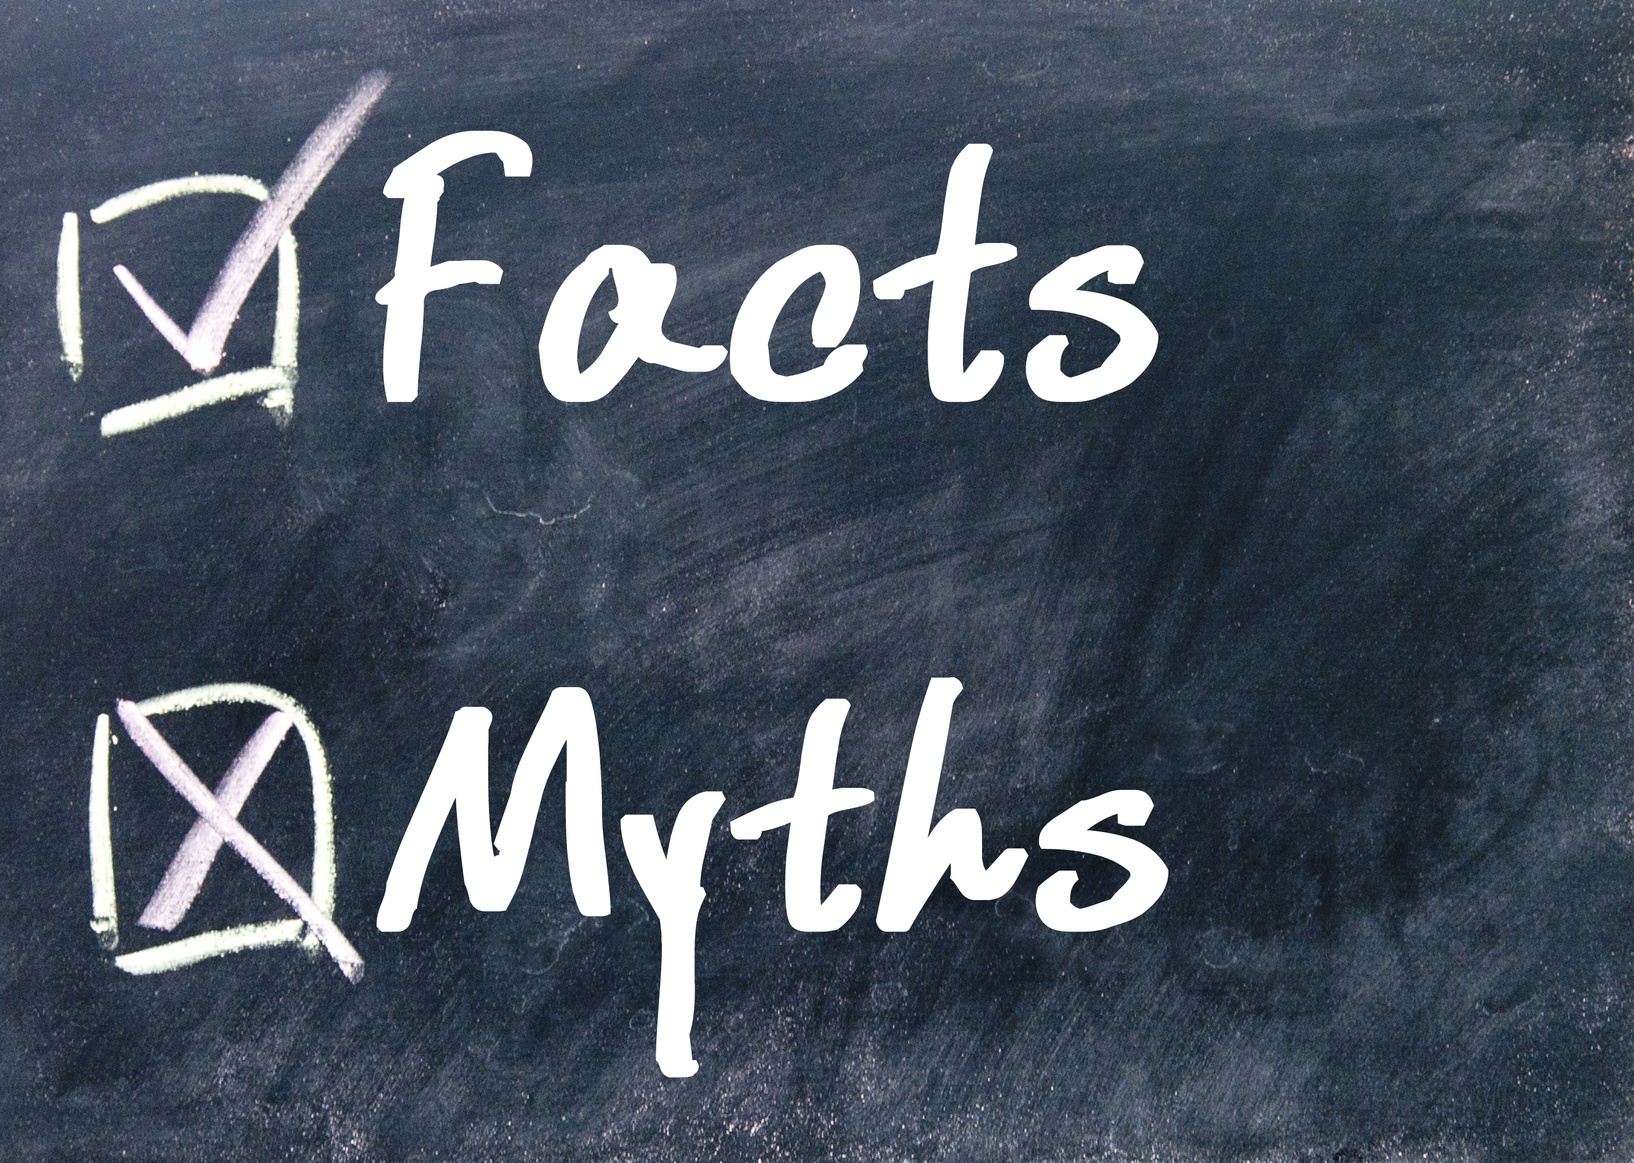 Web design myths that may wreck a havoc on your website